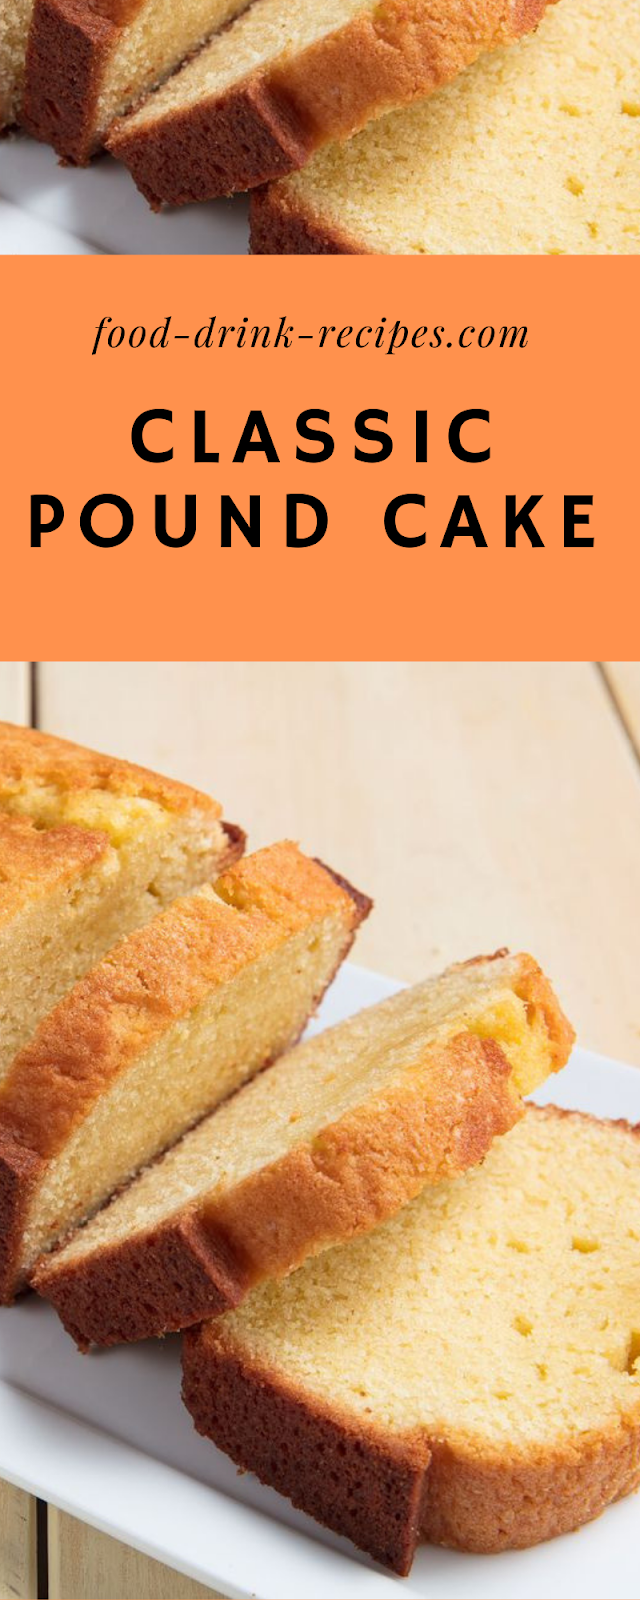 Classic Pound Cake - food-drink-recipes.com